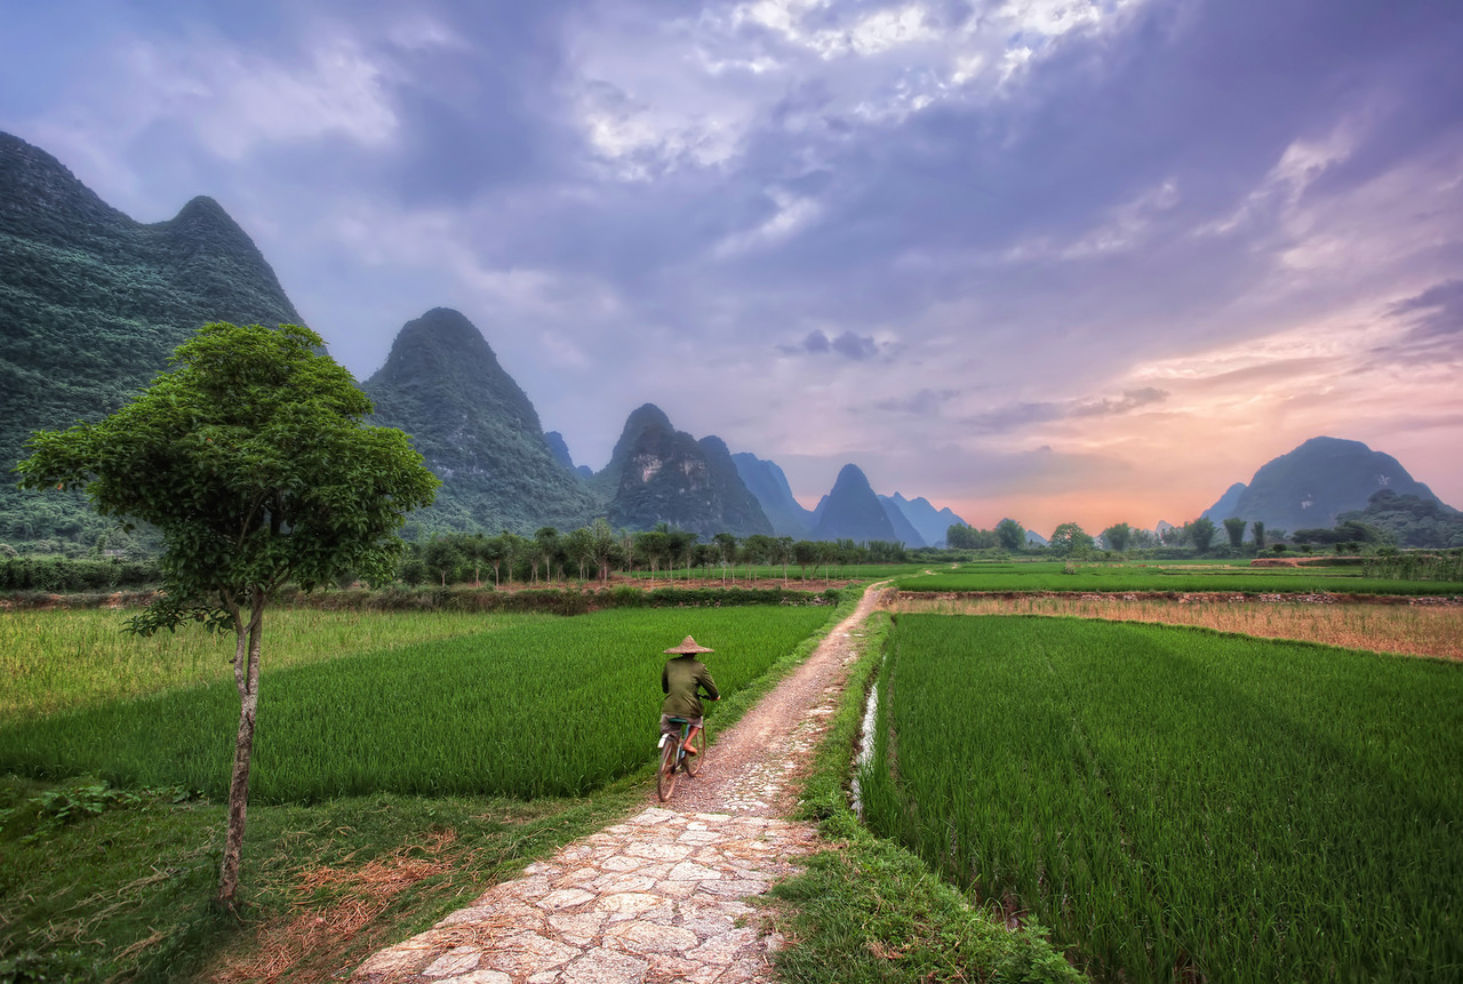 karst hills of Yangshuo in Southern China